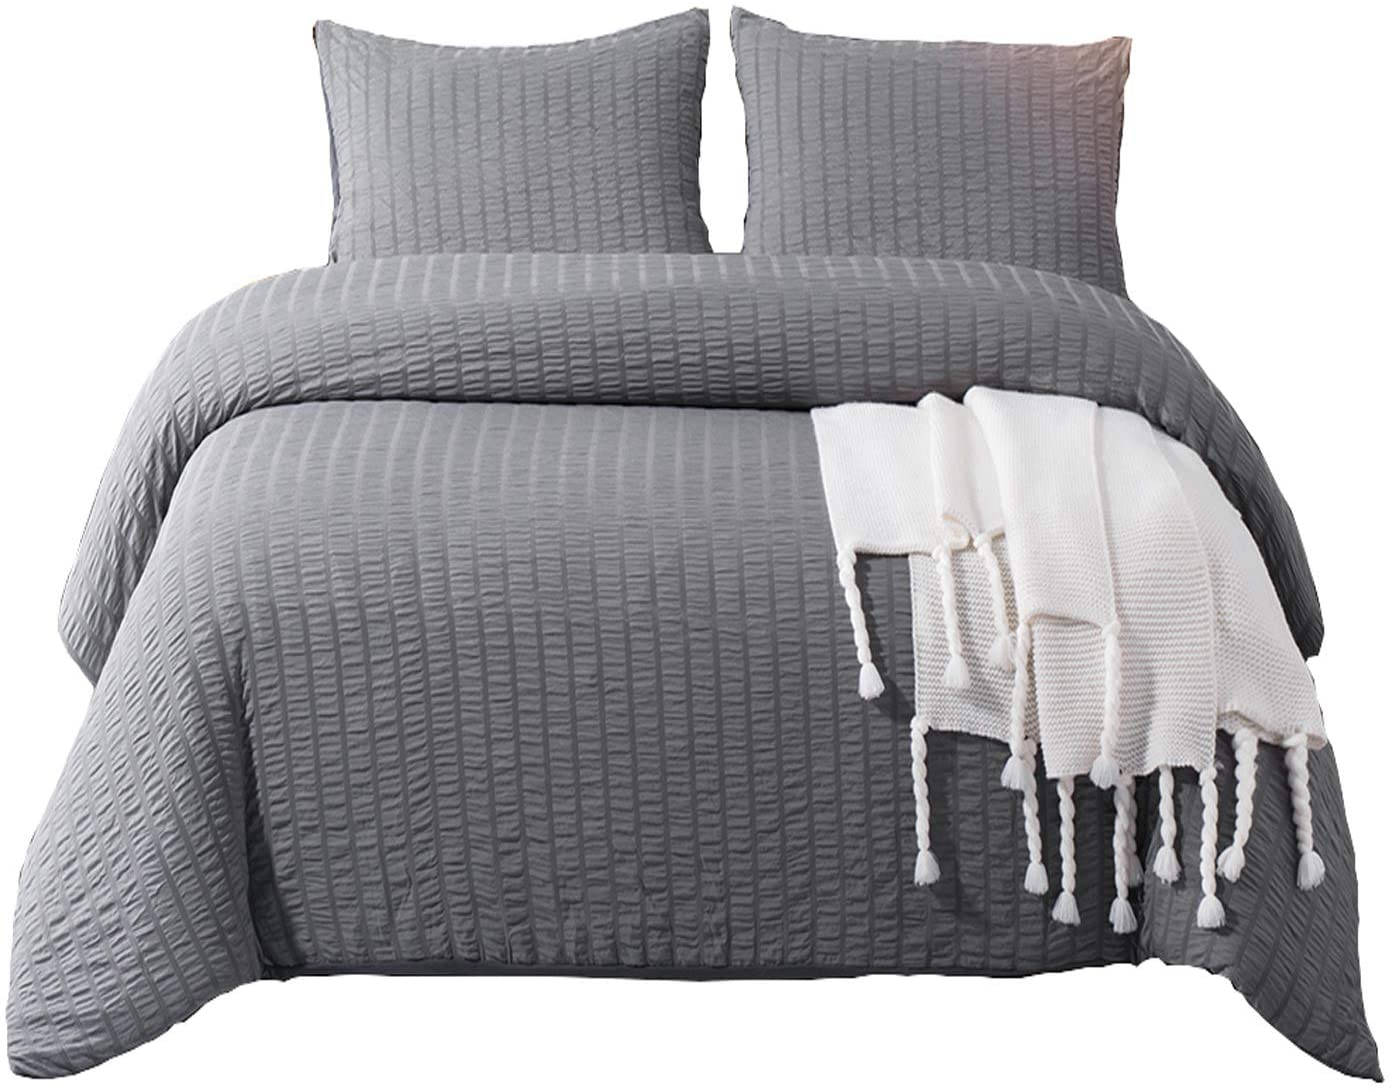 DuShow Gray Ruffled Duvet Cover Kids Twin Duvet Cover Set,Soft Microfiber Solid Comforter Cover Set with Zipper Closure Twin,Gray